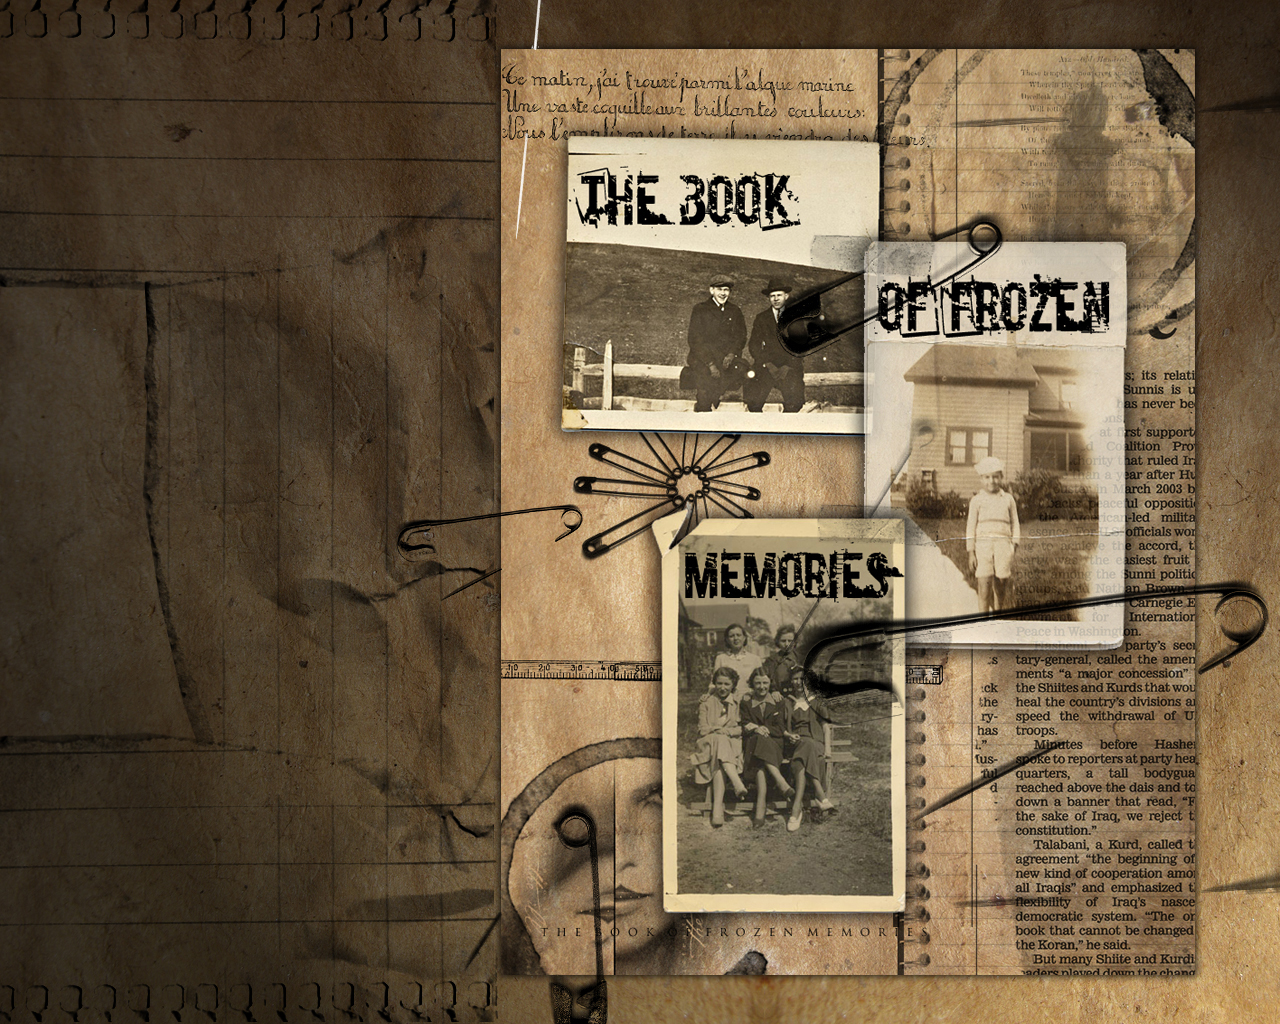 The Book of frozen Memories